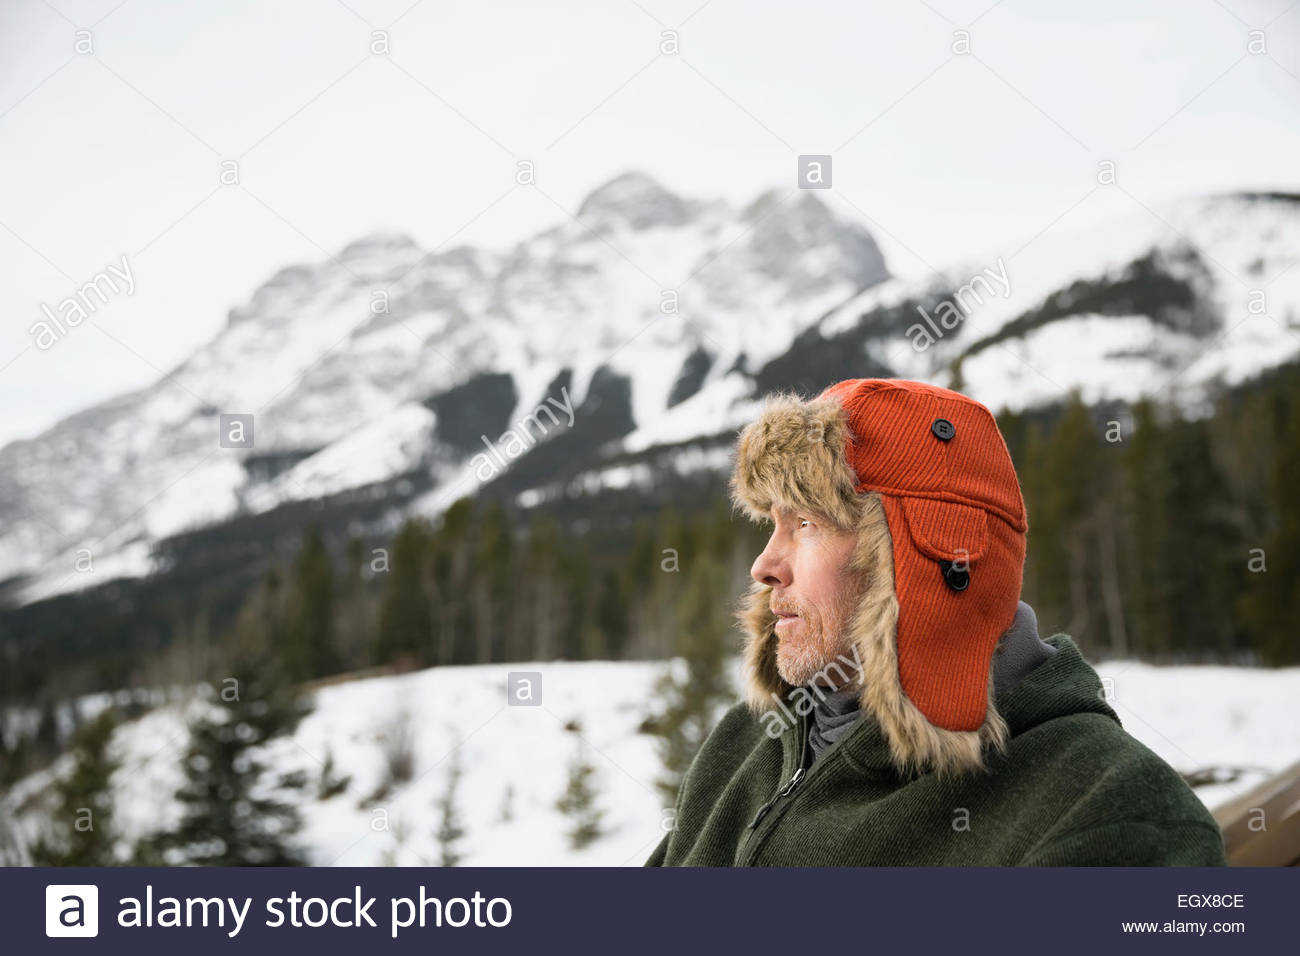 Serious man in fur hat below snowy mountains - Stock Image